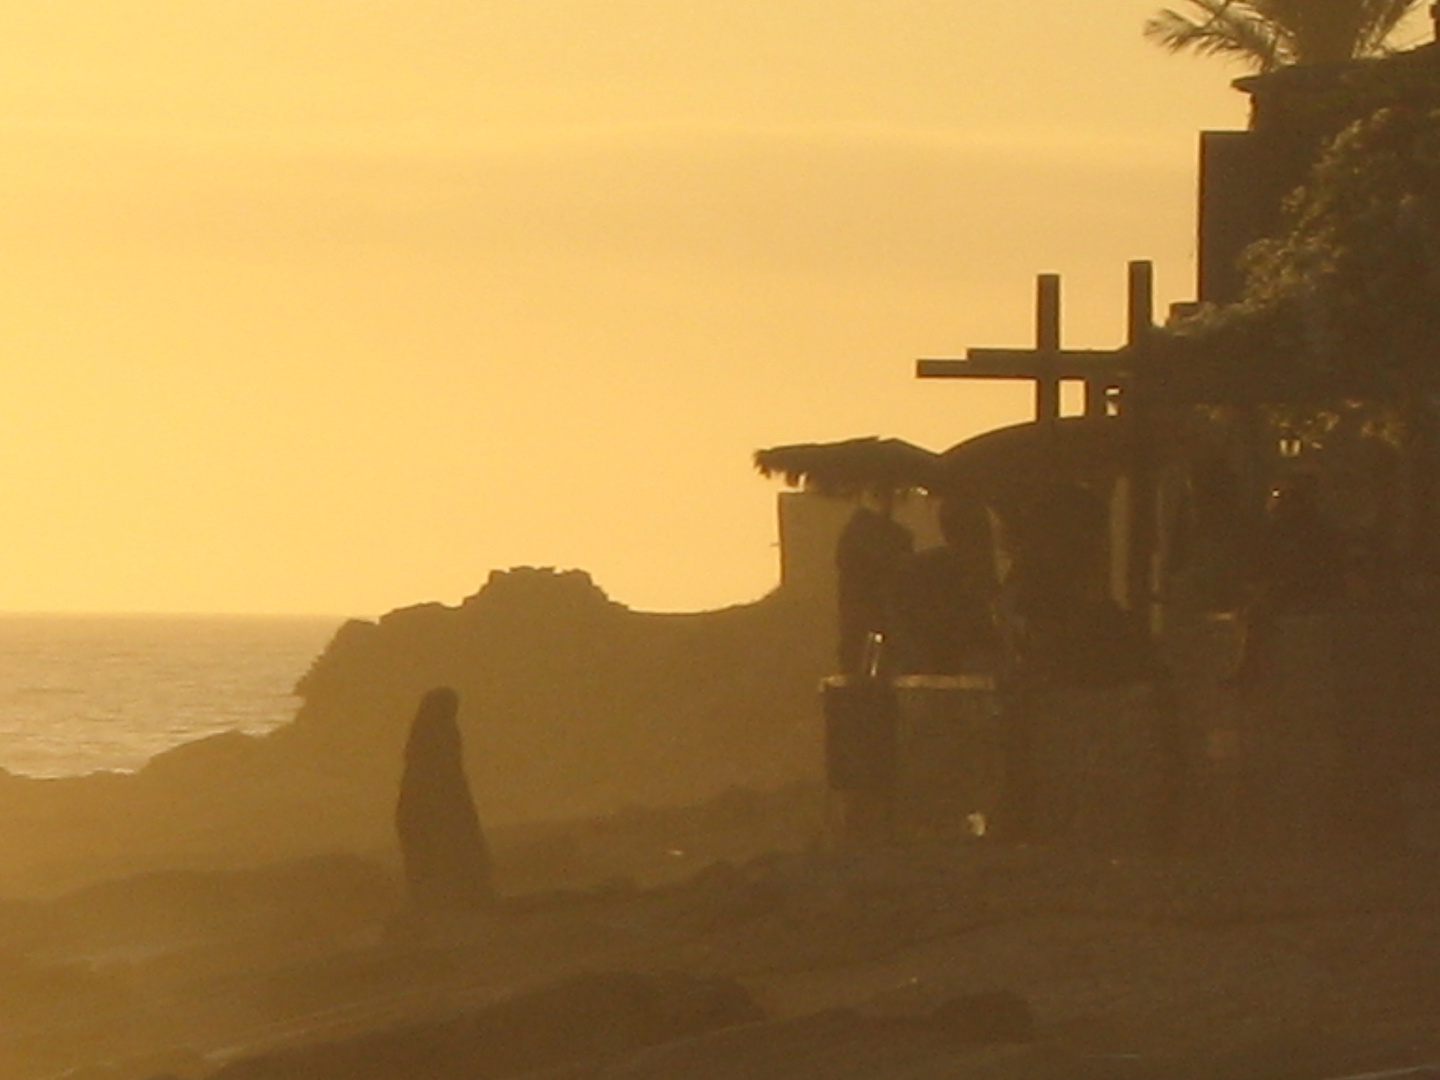 Maroc: Sunset at Taghazout